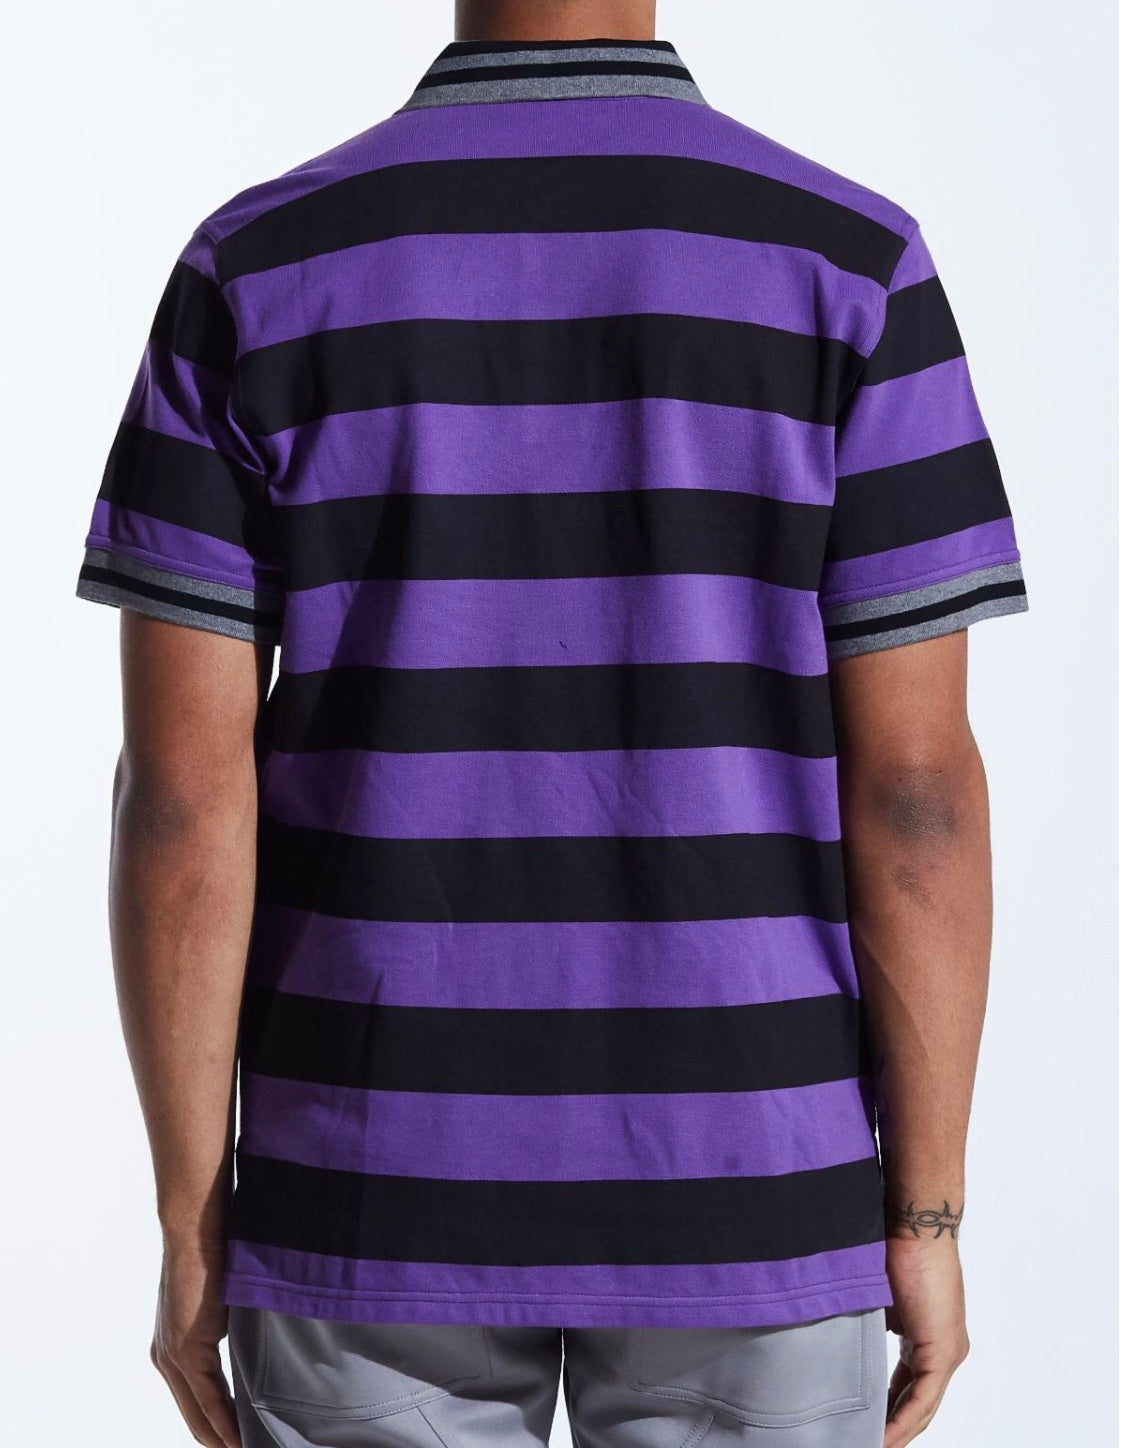 Karter Collection Striped Groot Polo Shirt (Purple/Black)